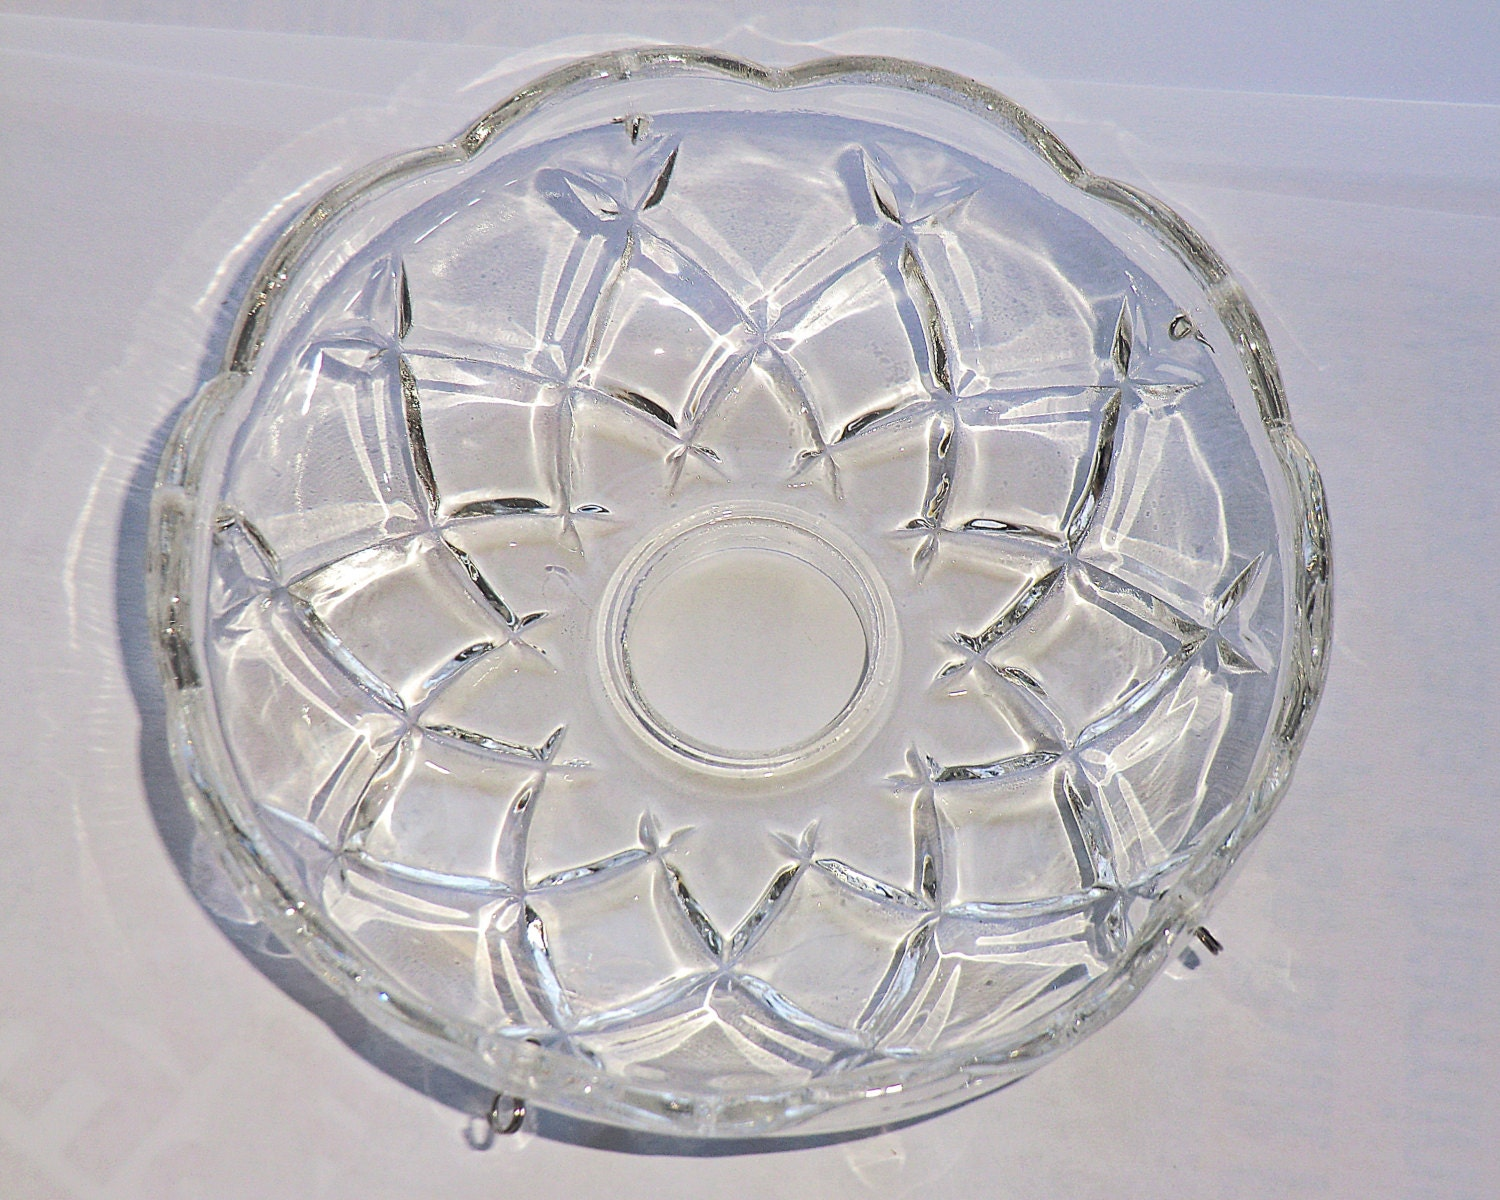 Chandelier Bobeche Bowl Drip Tray Thick Cut Glass Light